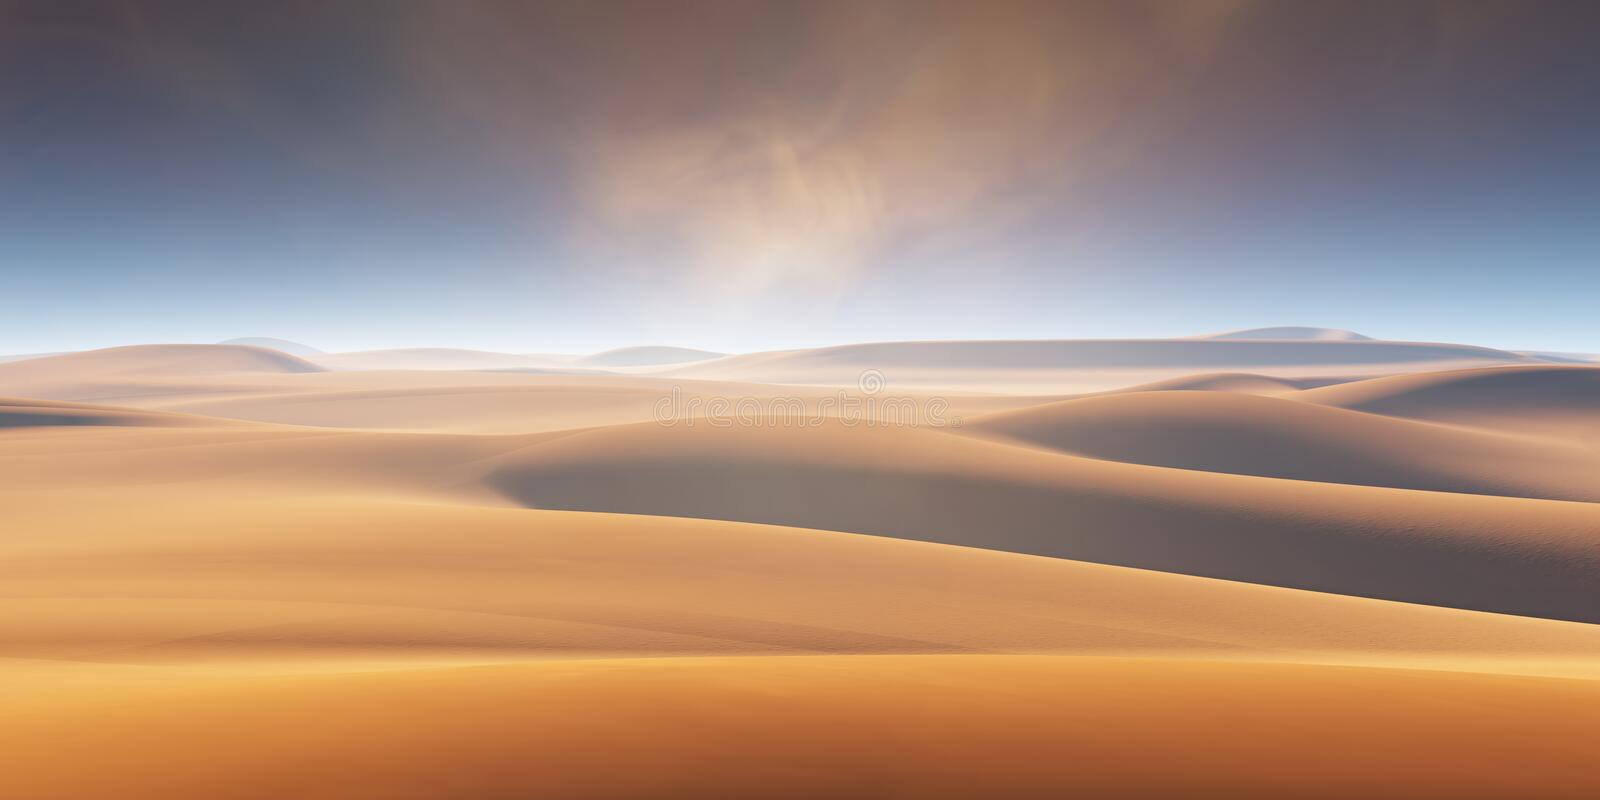 Sand dunes and dust storm in the desert, hot and dry desert landscape royalty free illustration